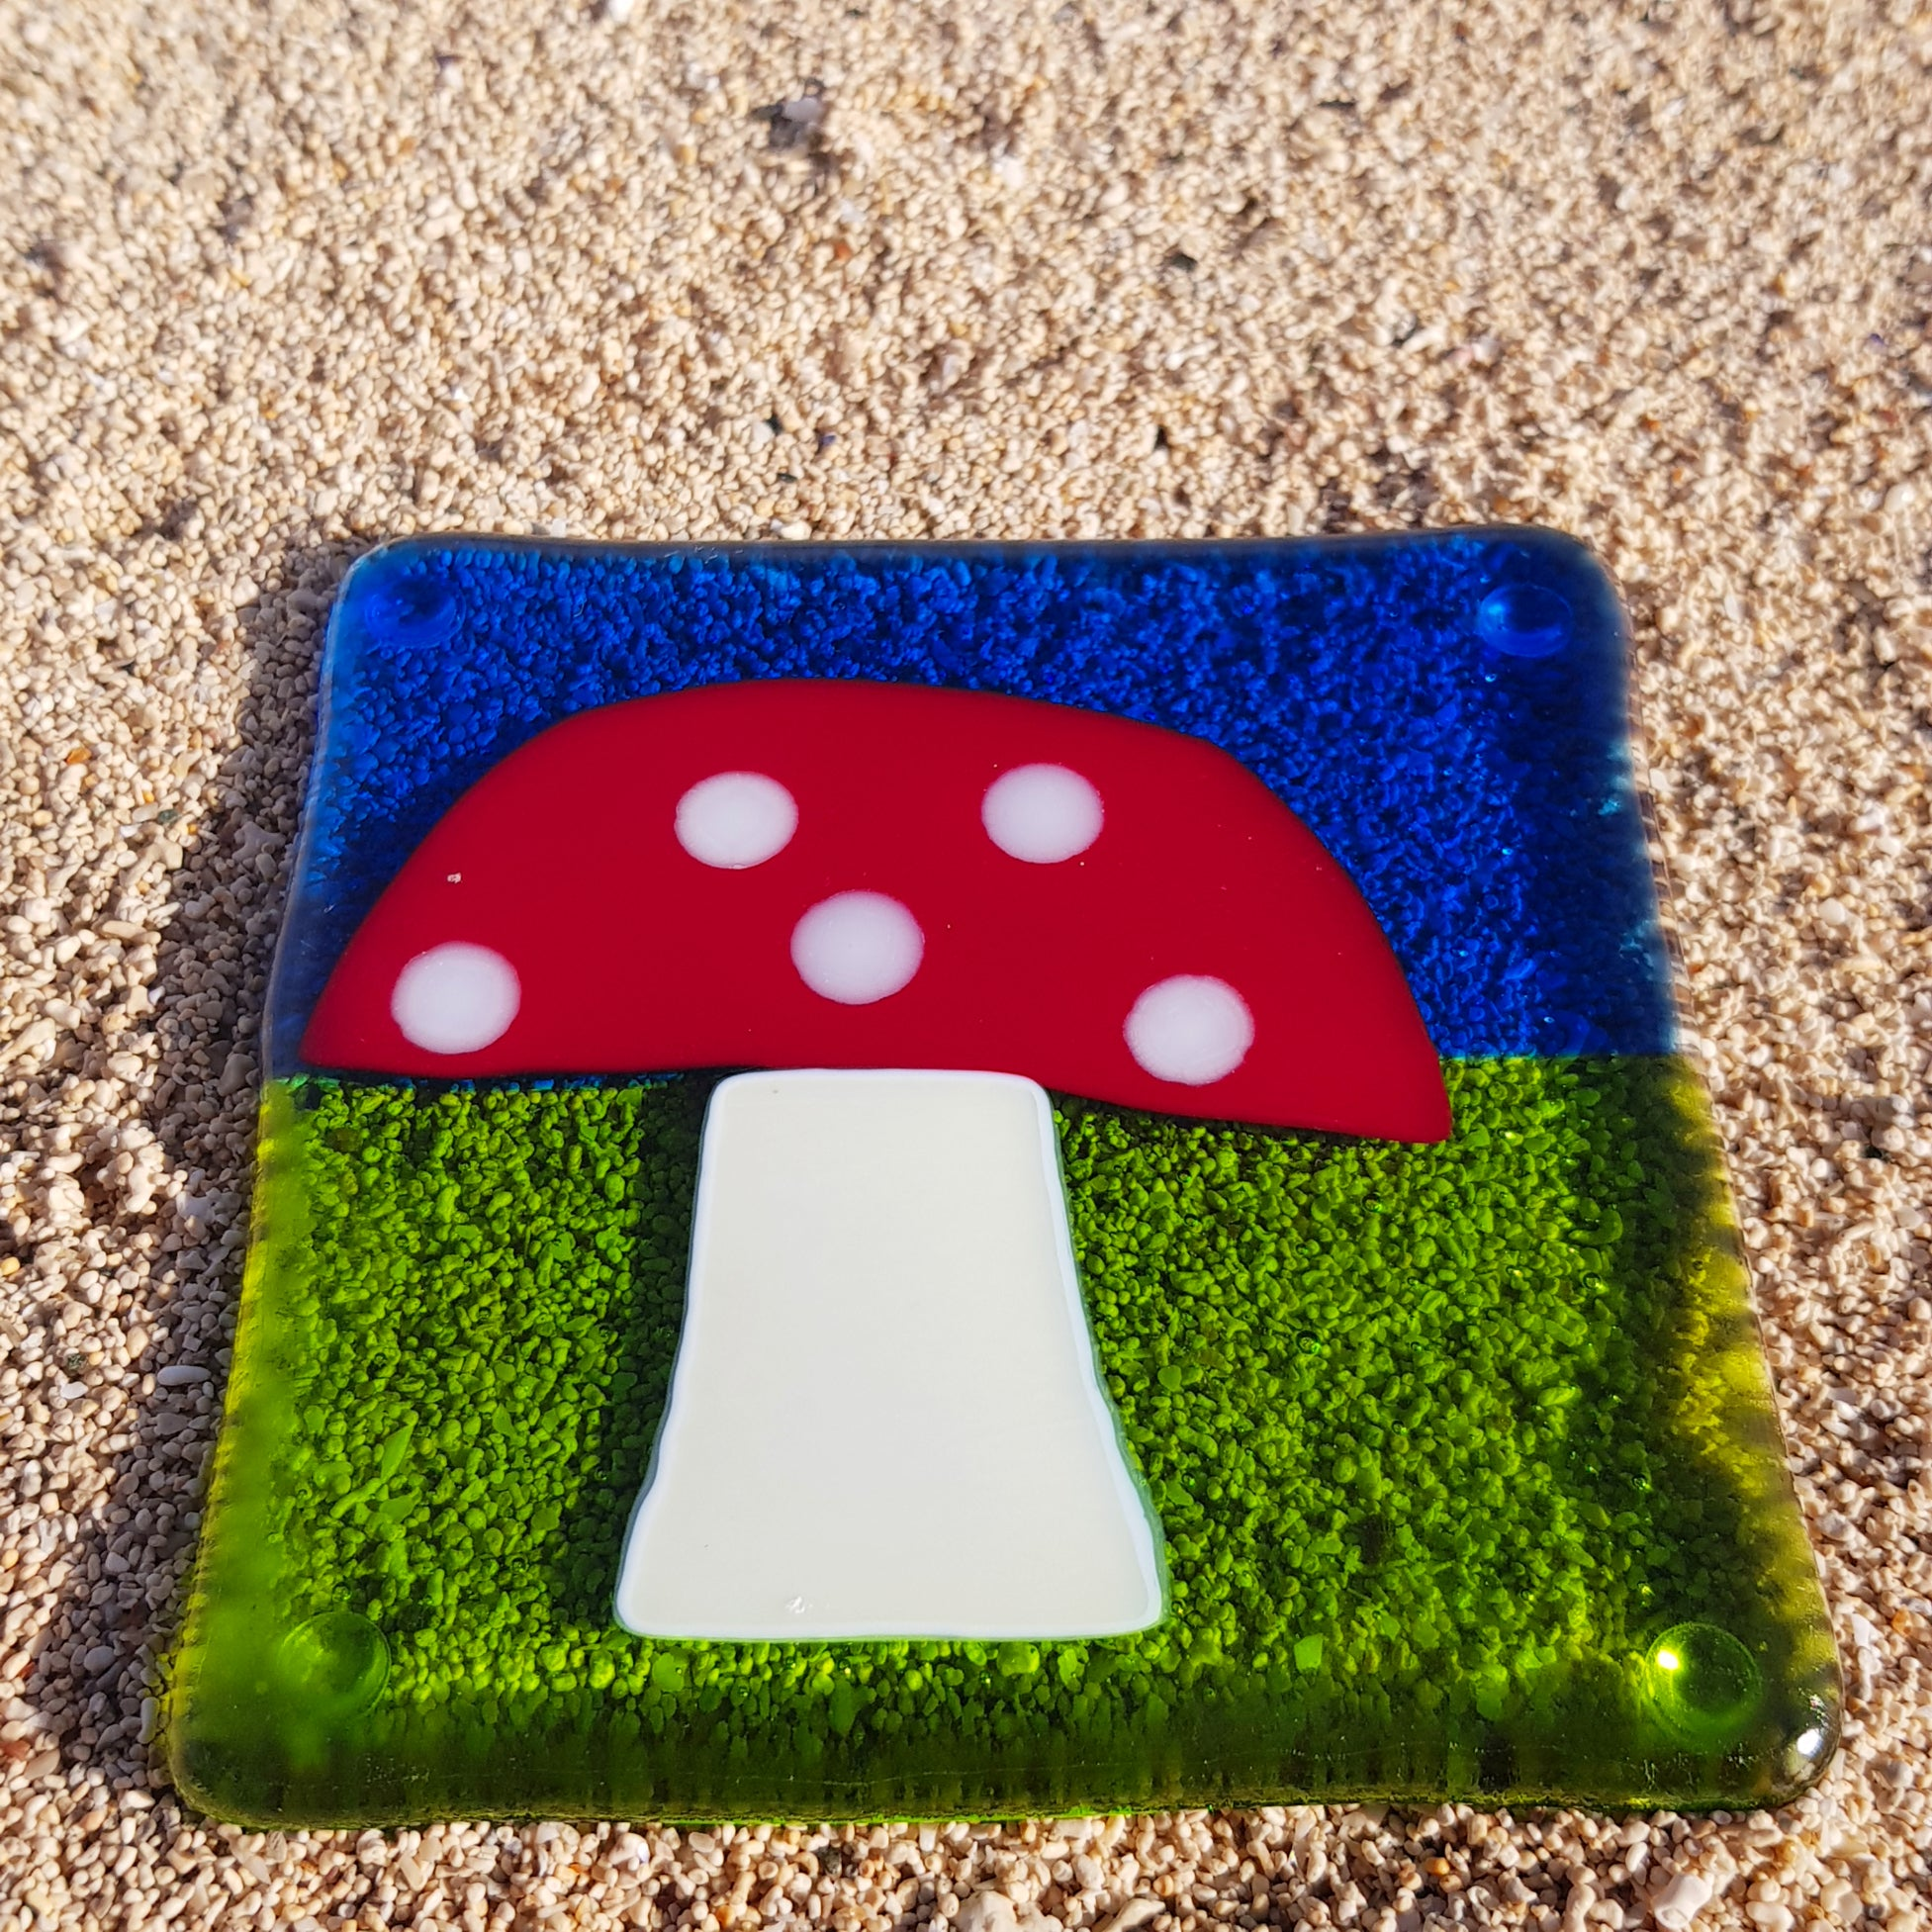 A fused glass coaster featuring a toadstool, made by Connemara Blue